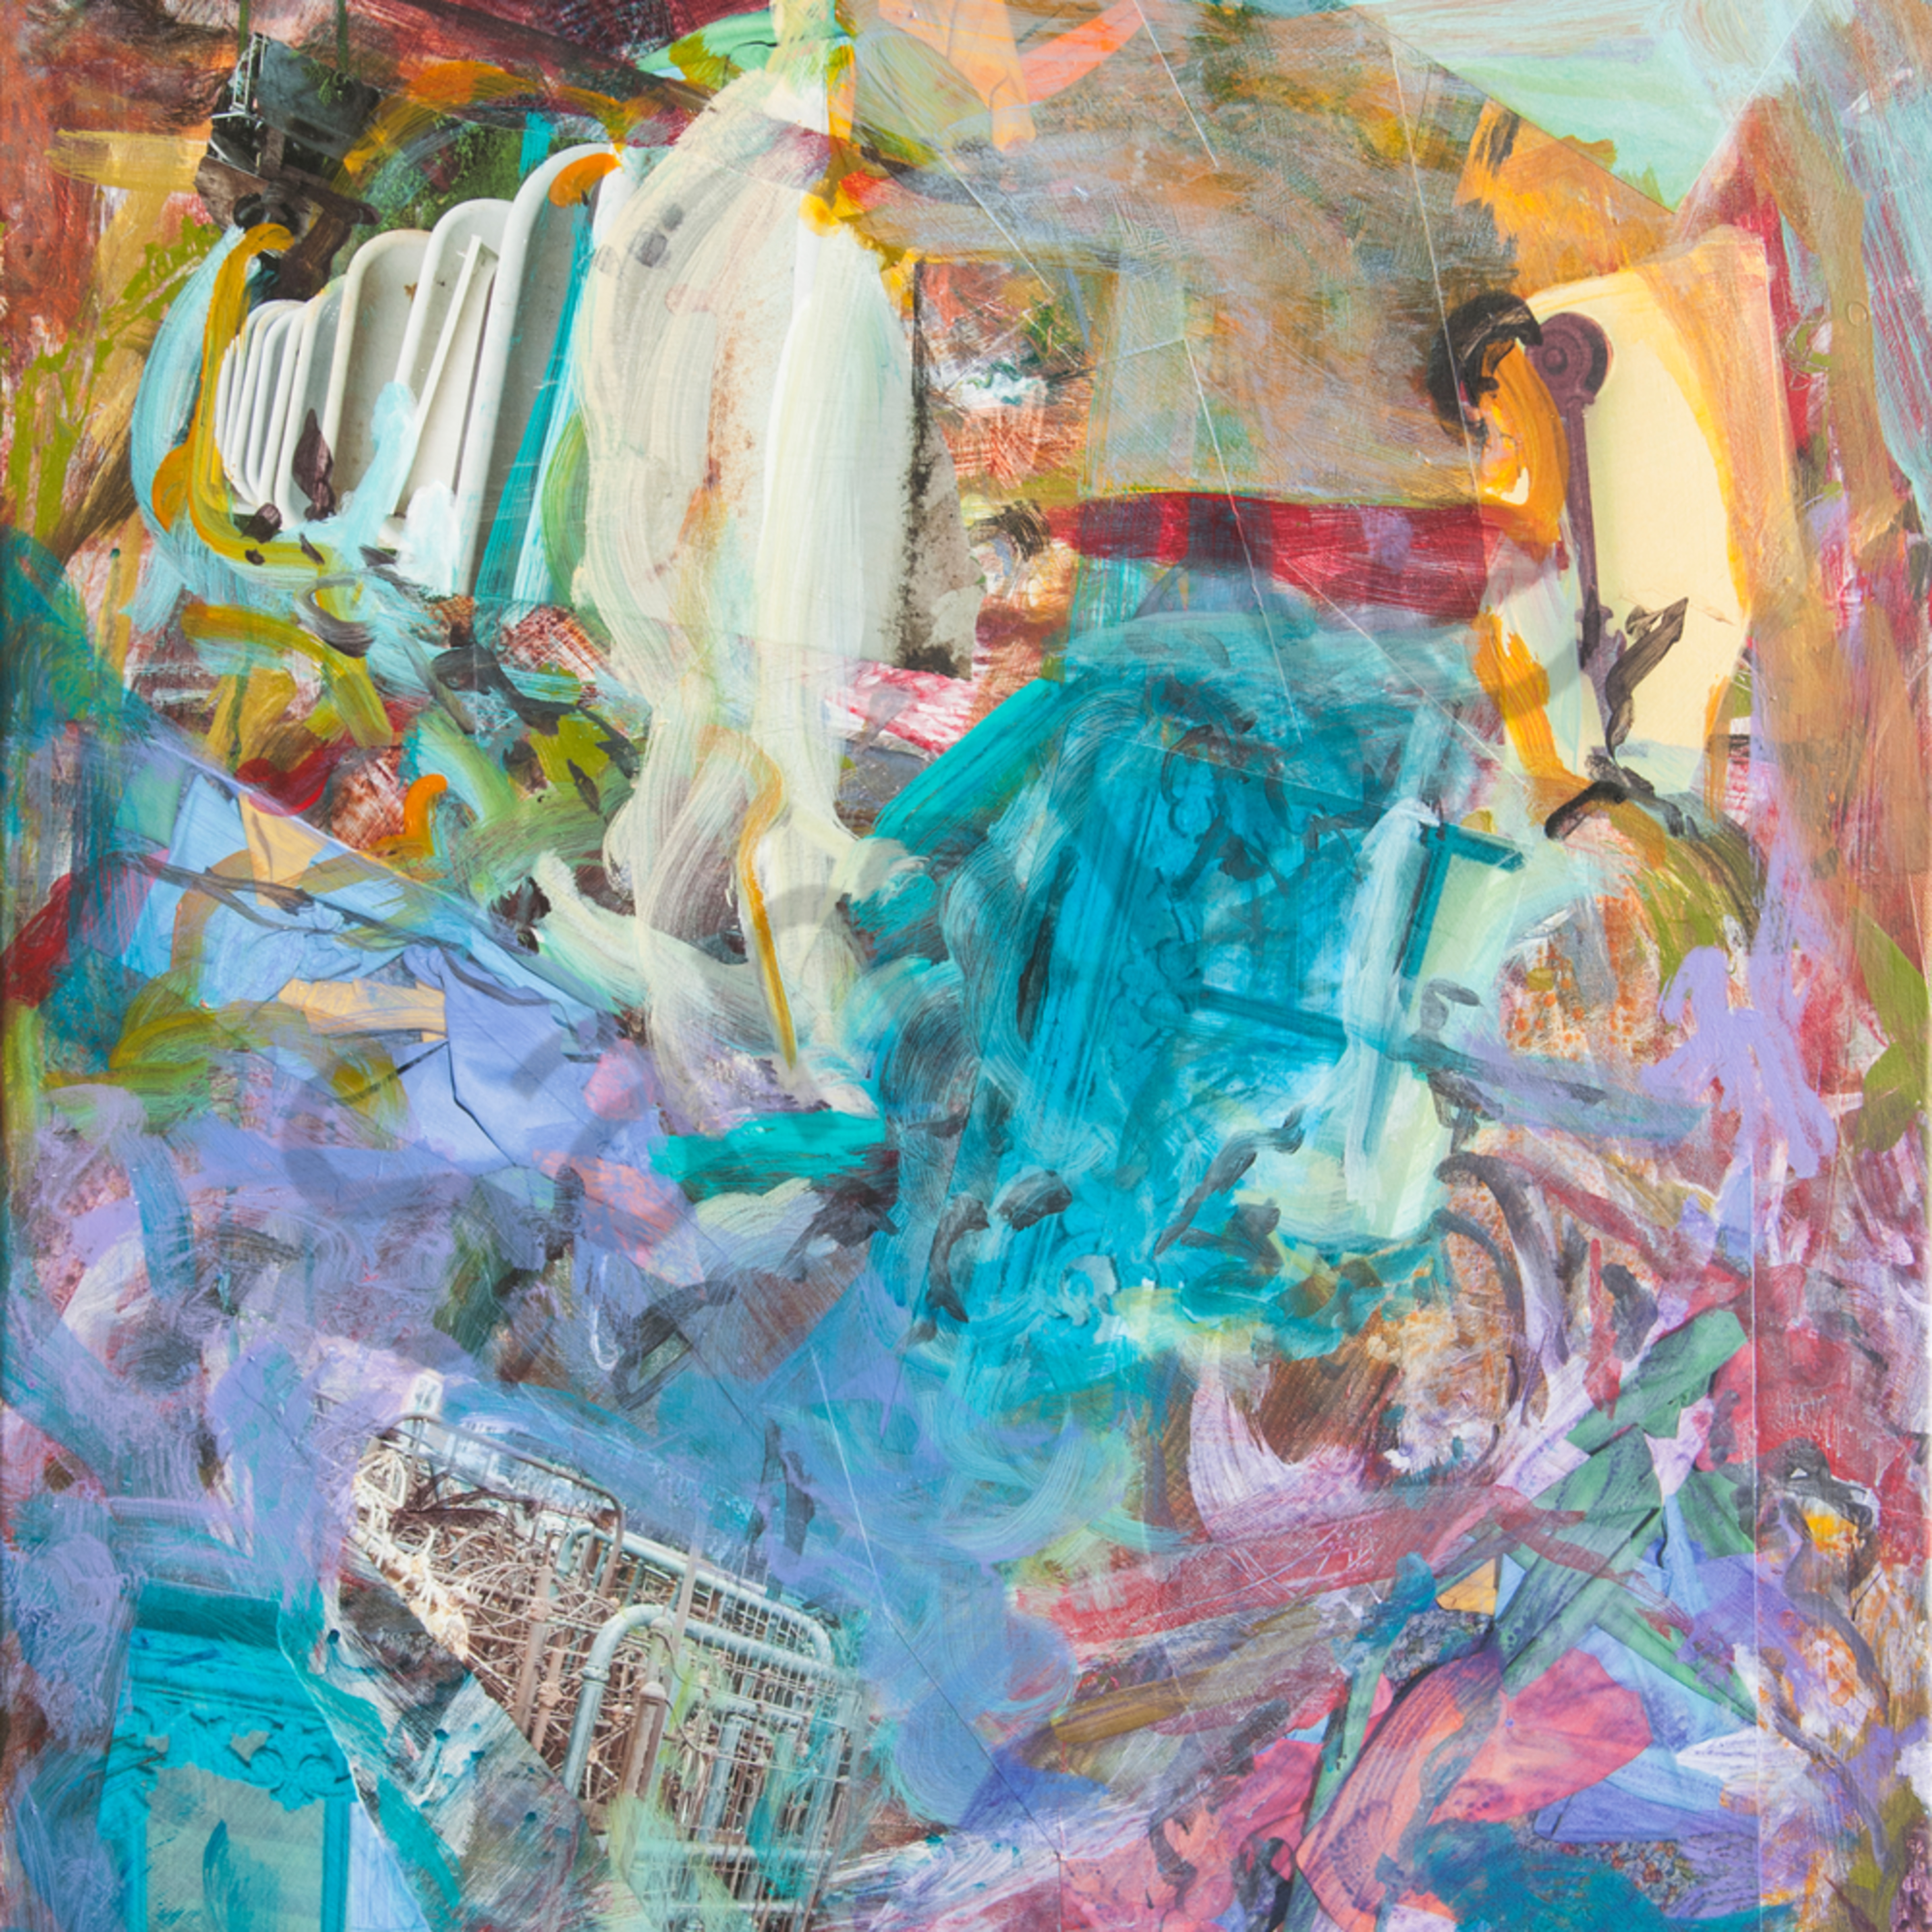 Waterfall in the bedroom 48x38 sgadyd